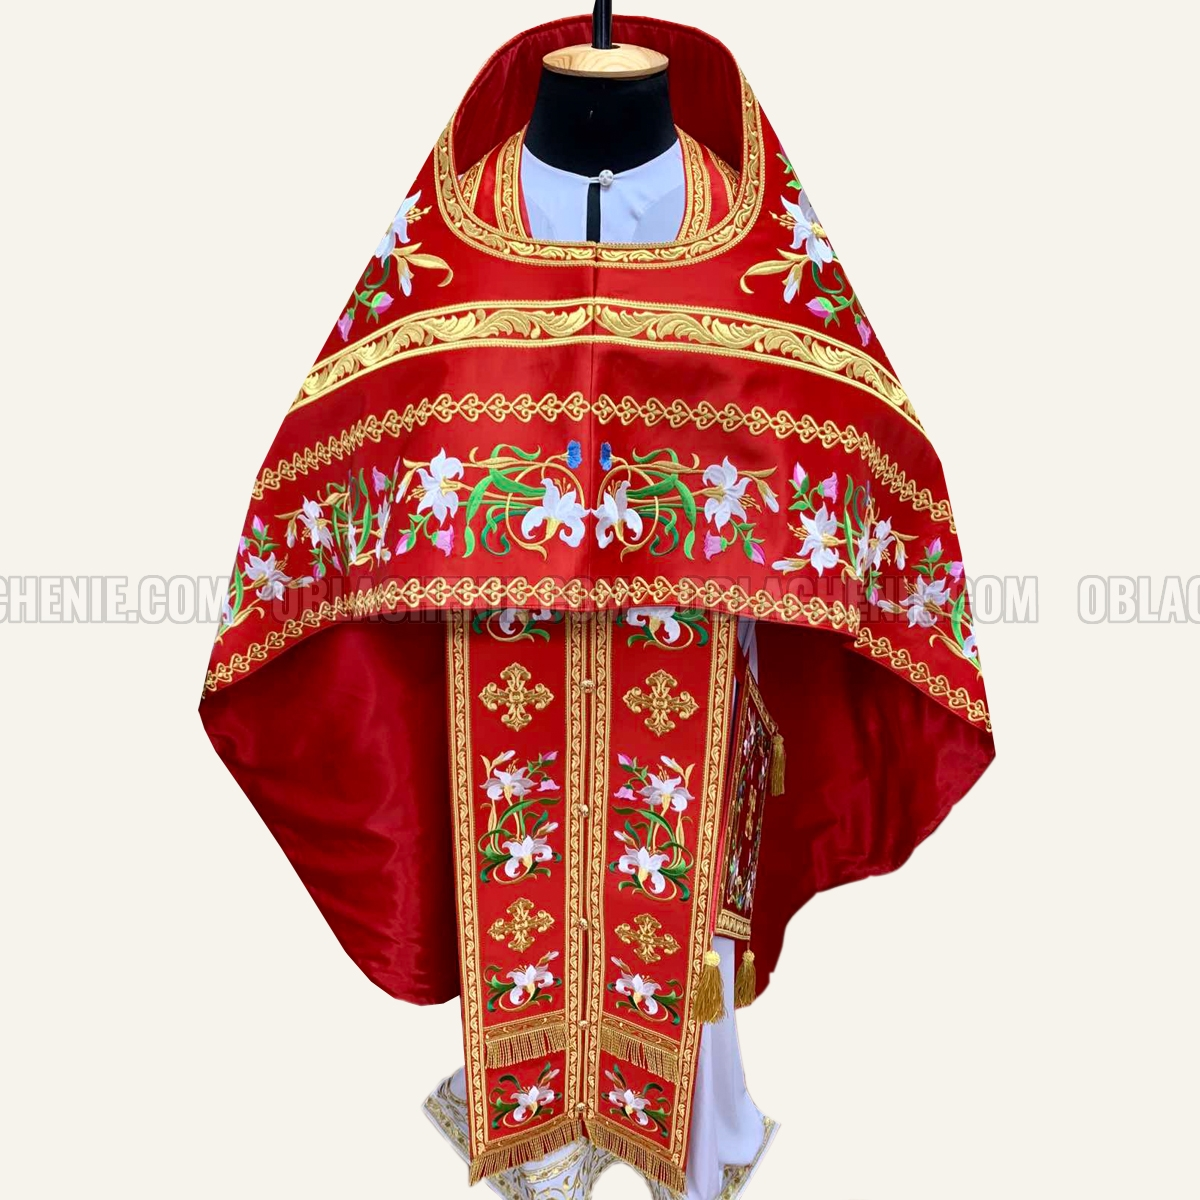 EMBROIDERED PRIEST'S VESTMENTS 10928